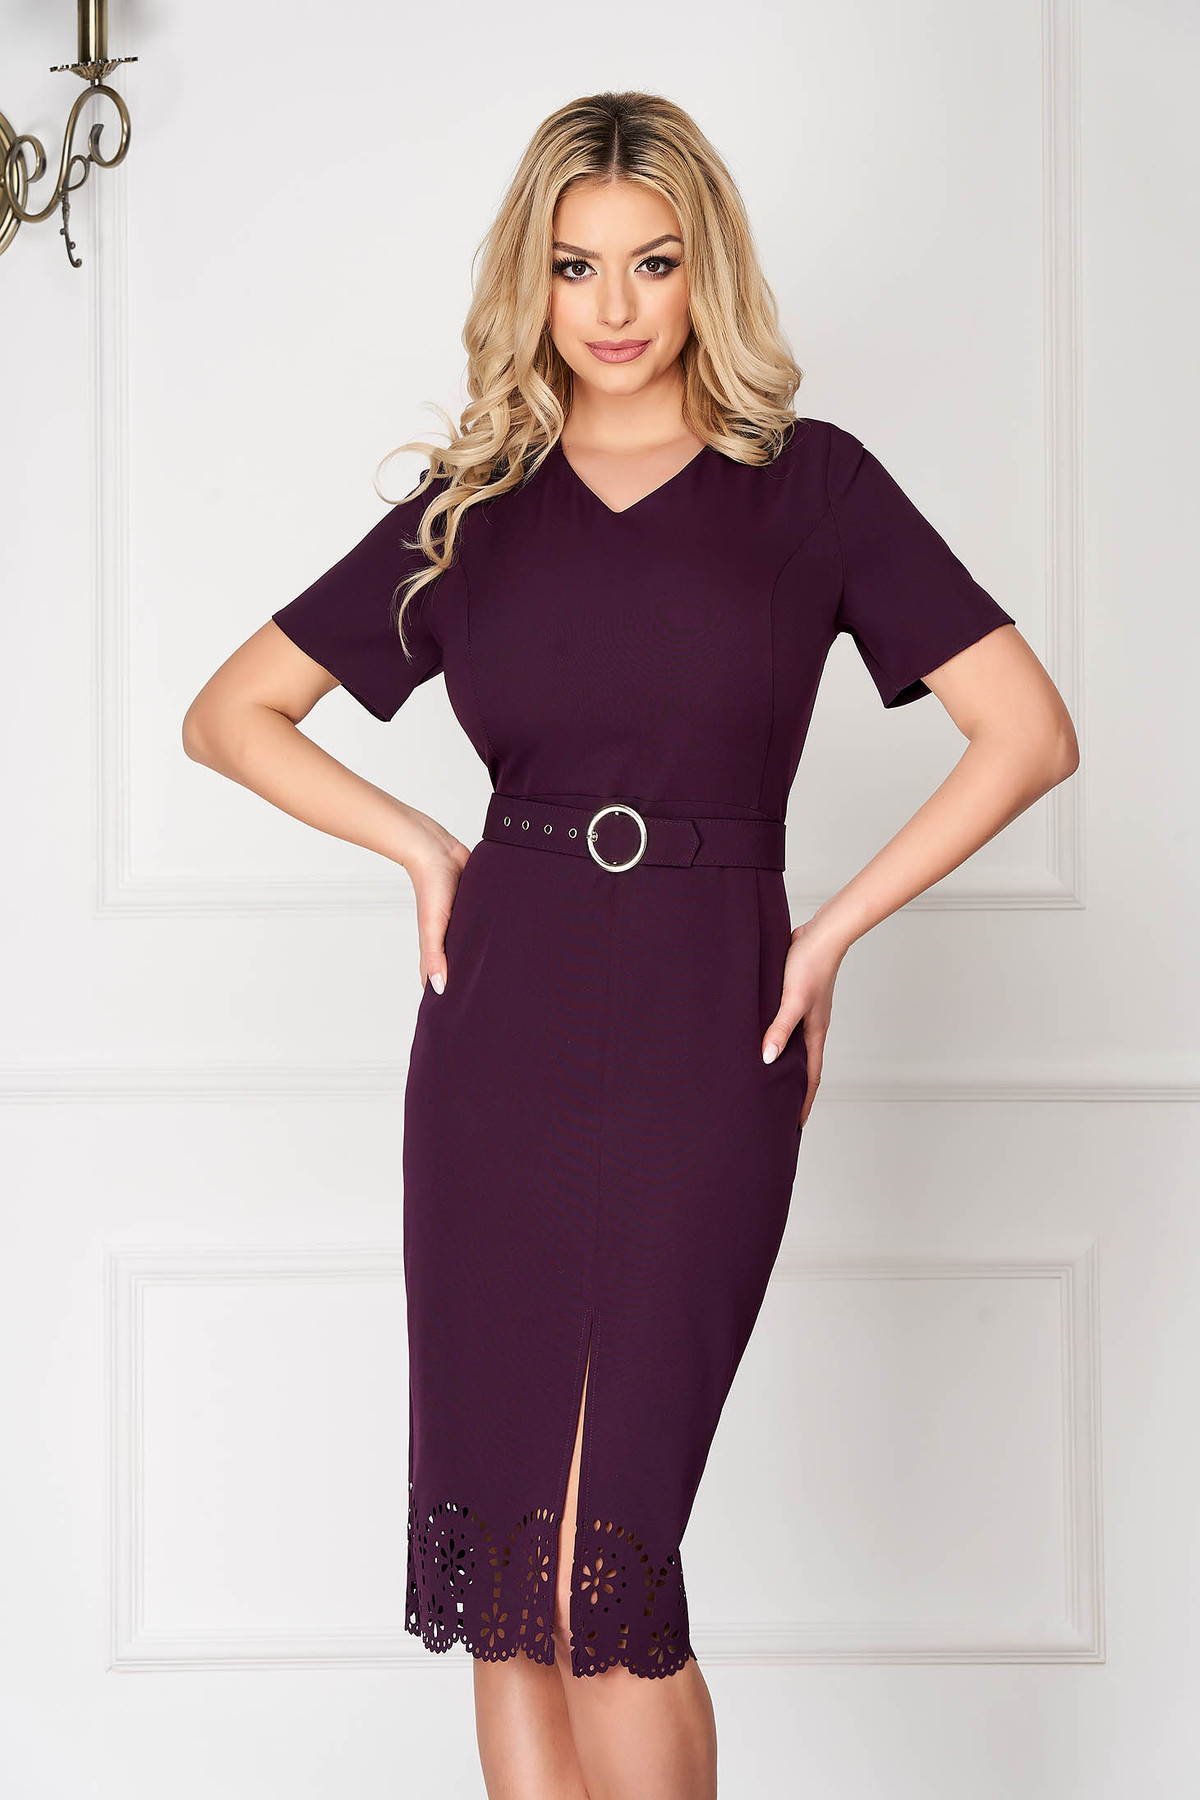 Rochie mov office midi tip creion cu decolteu in v si slit frontal